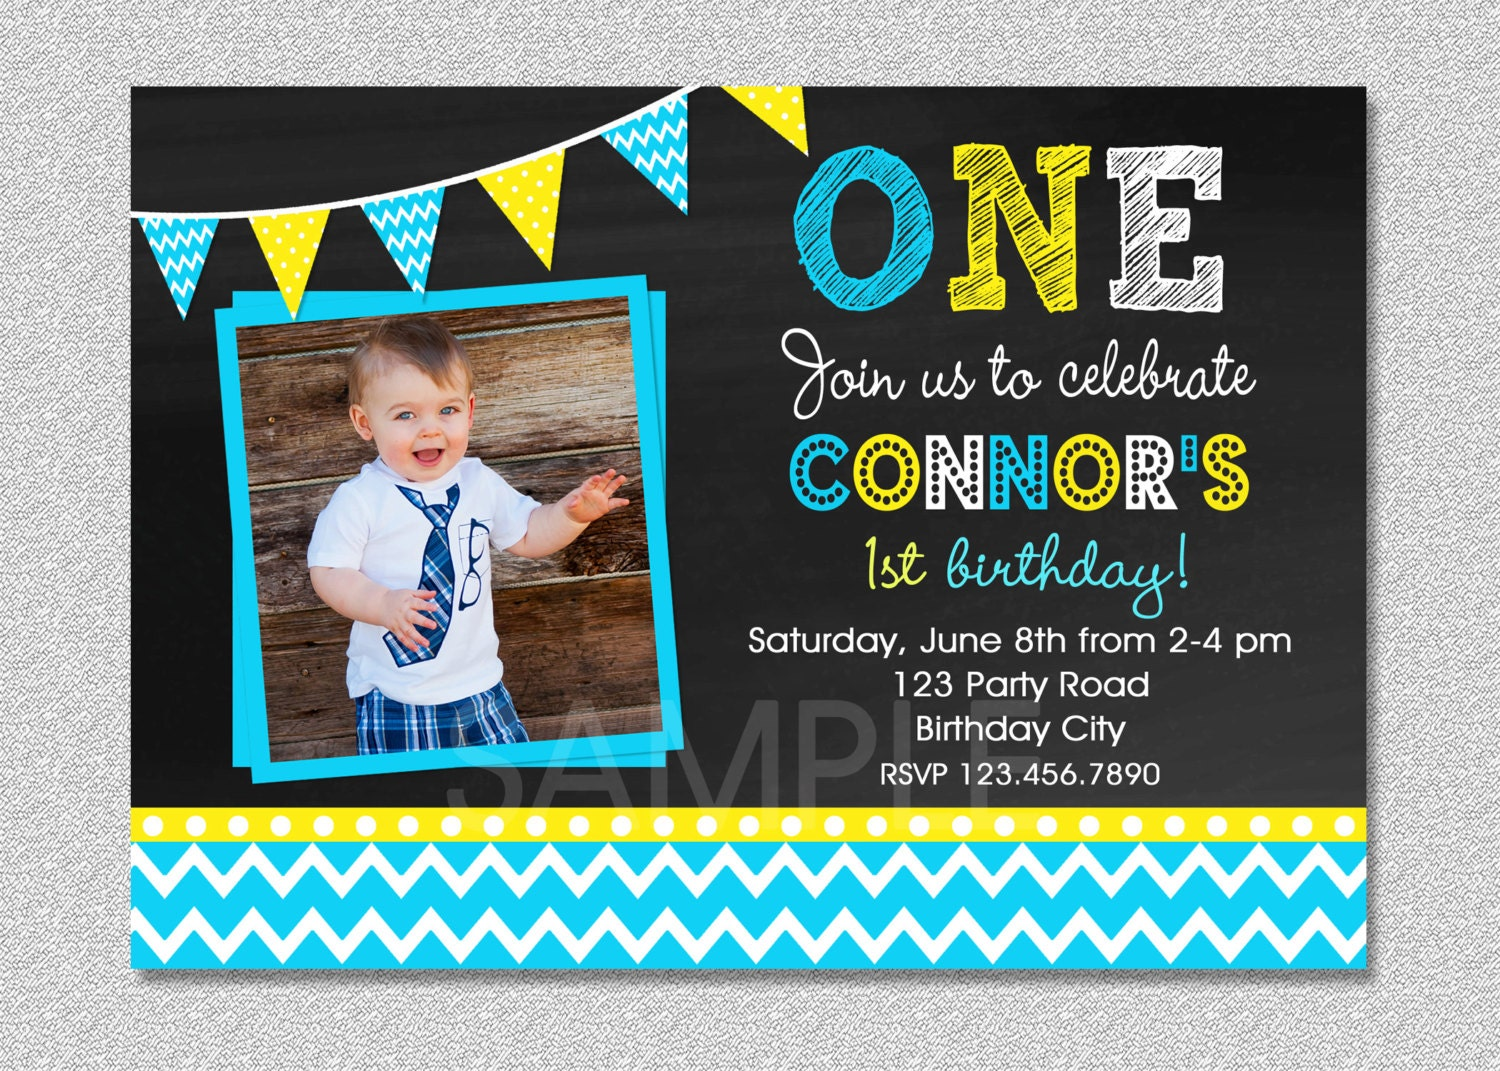 Boys birthday invitations idealstalist boys birthday invitations filmwisefo